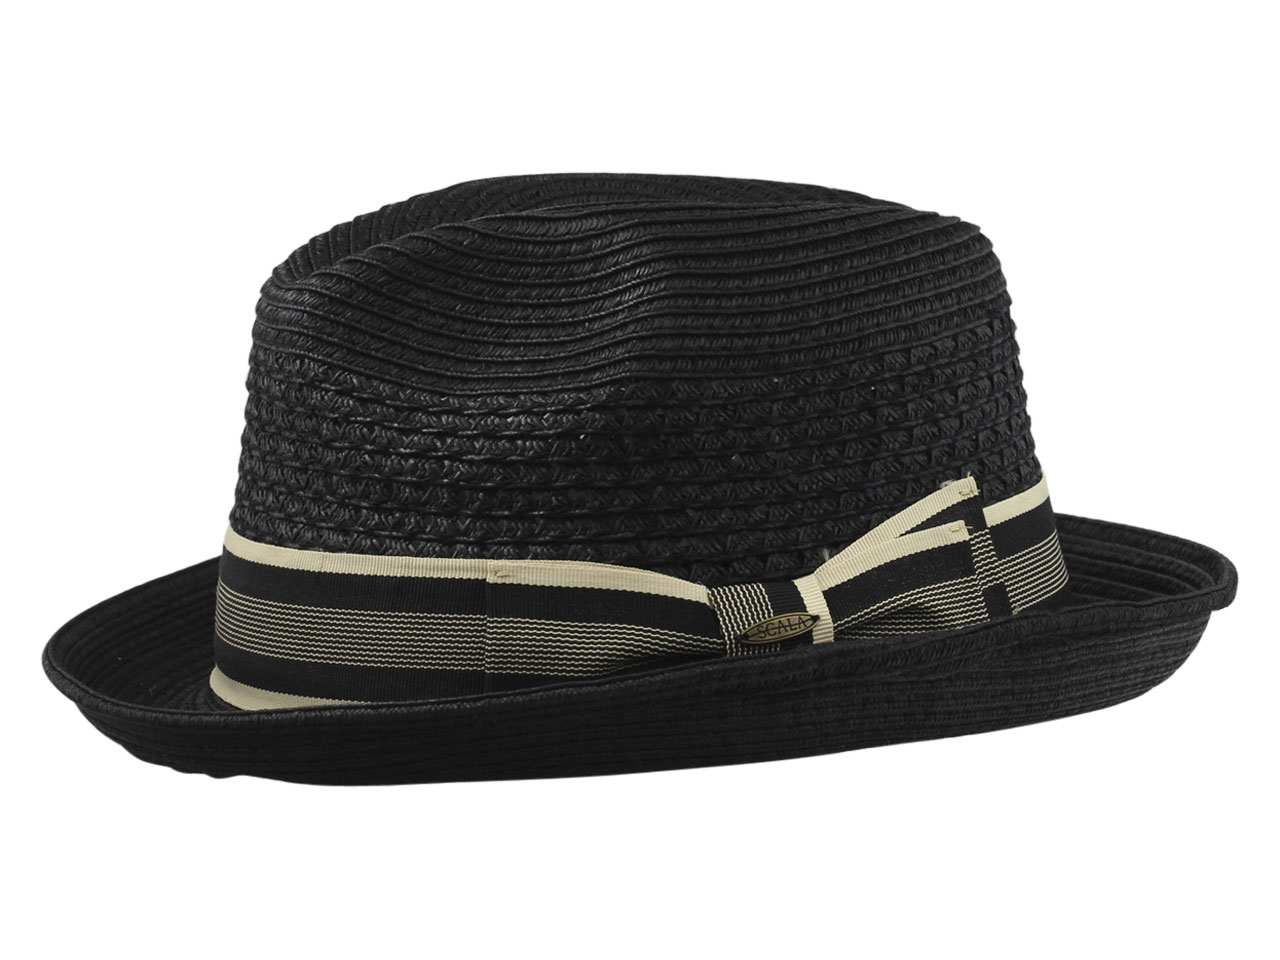 65542355c Details about Scala Men's Paper Braid Toyo Fedora Hat